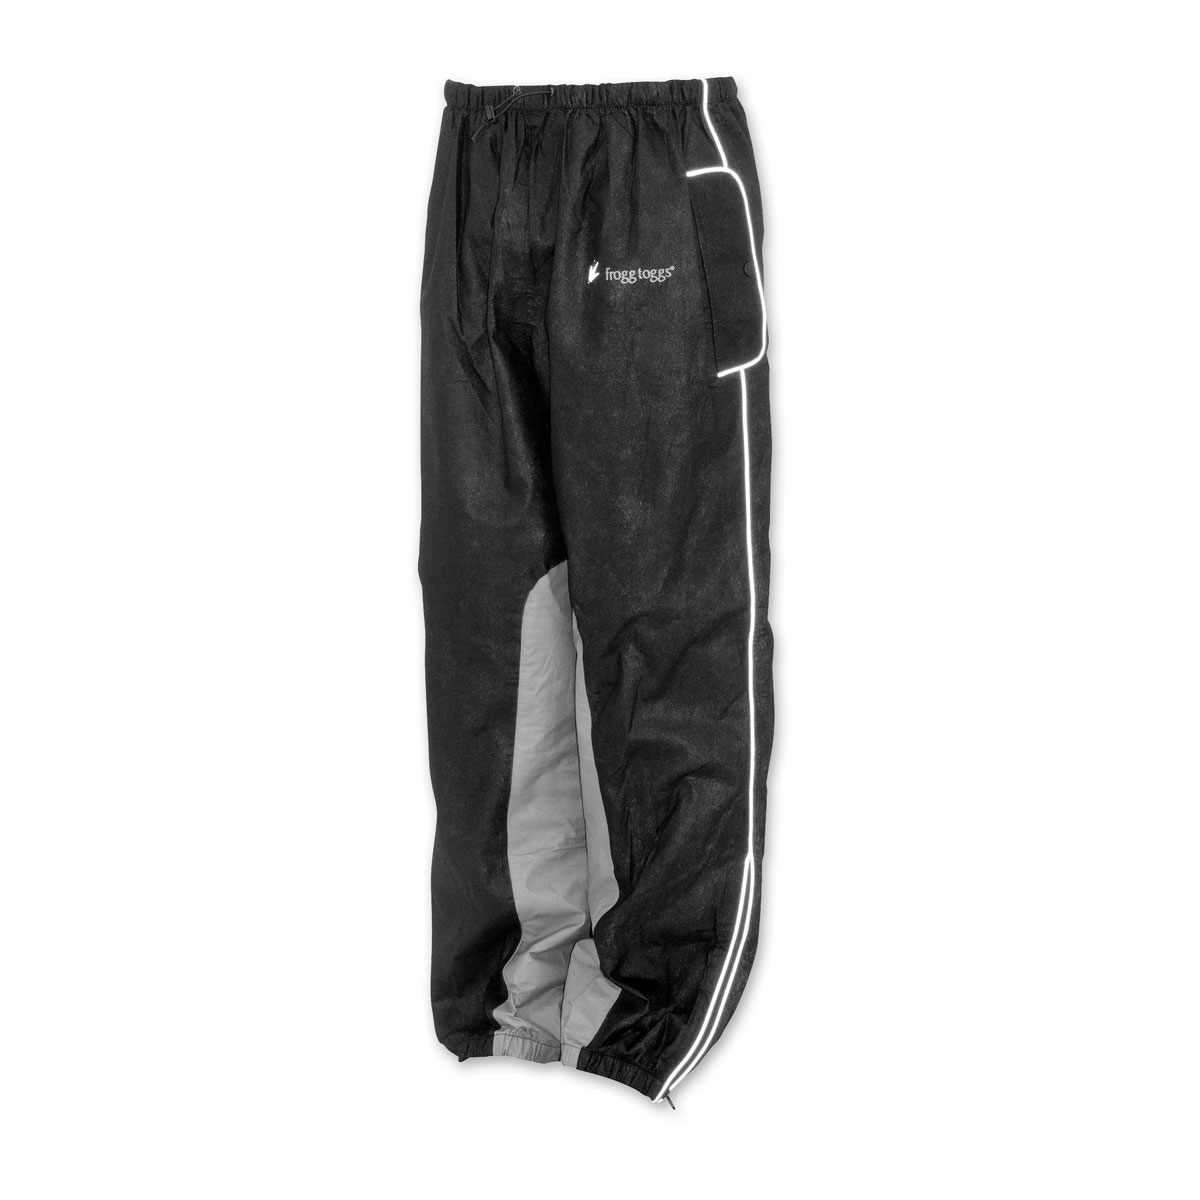 Frogg Toggs Women's Road Toad Black Rain Pants